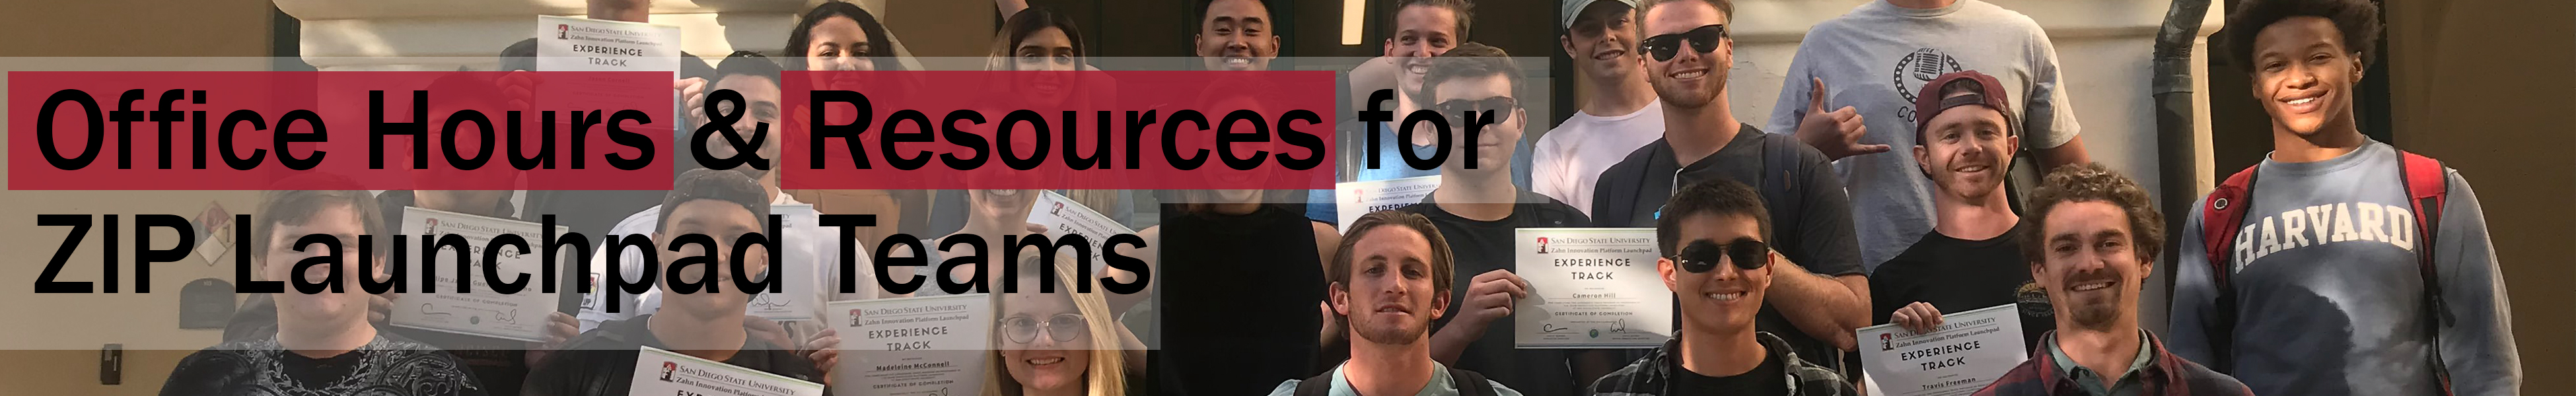 """Office Hours and Resouces for Active ZIP Launchpad Teams"" with a picture of students behind"